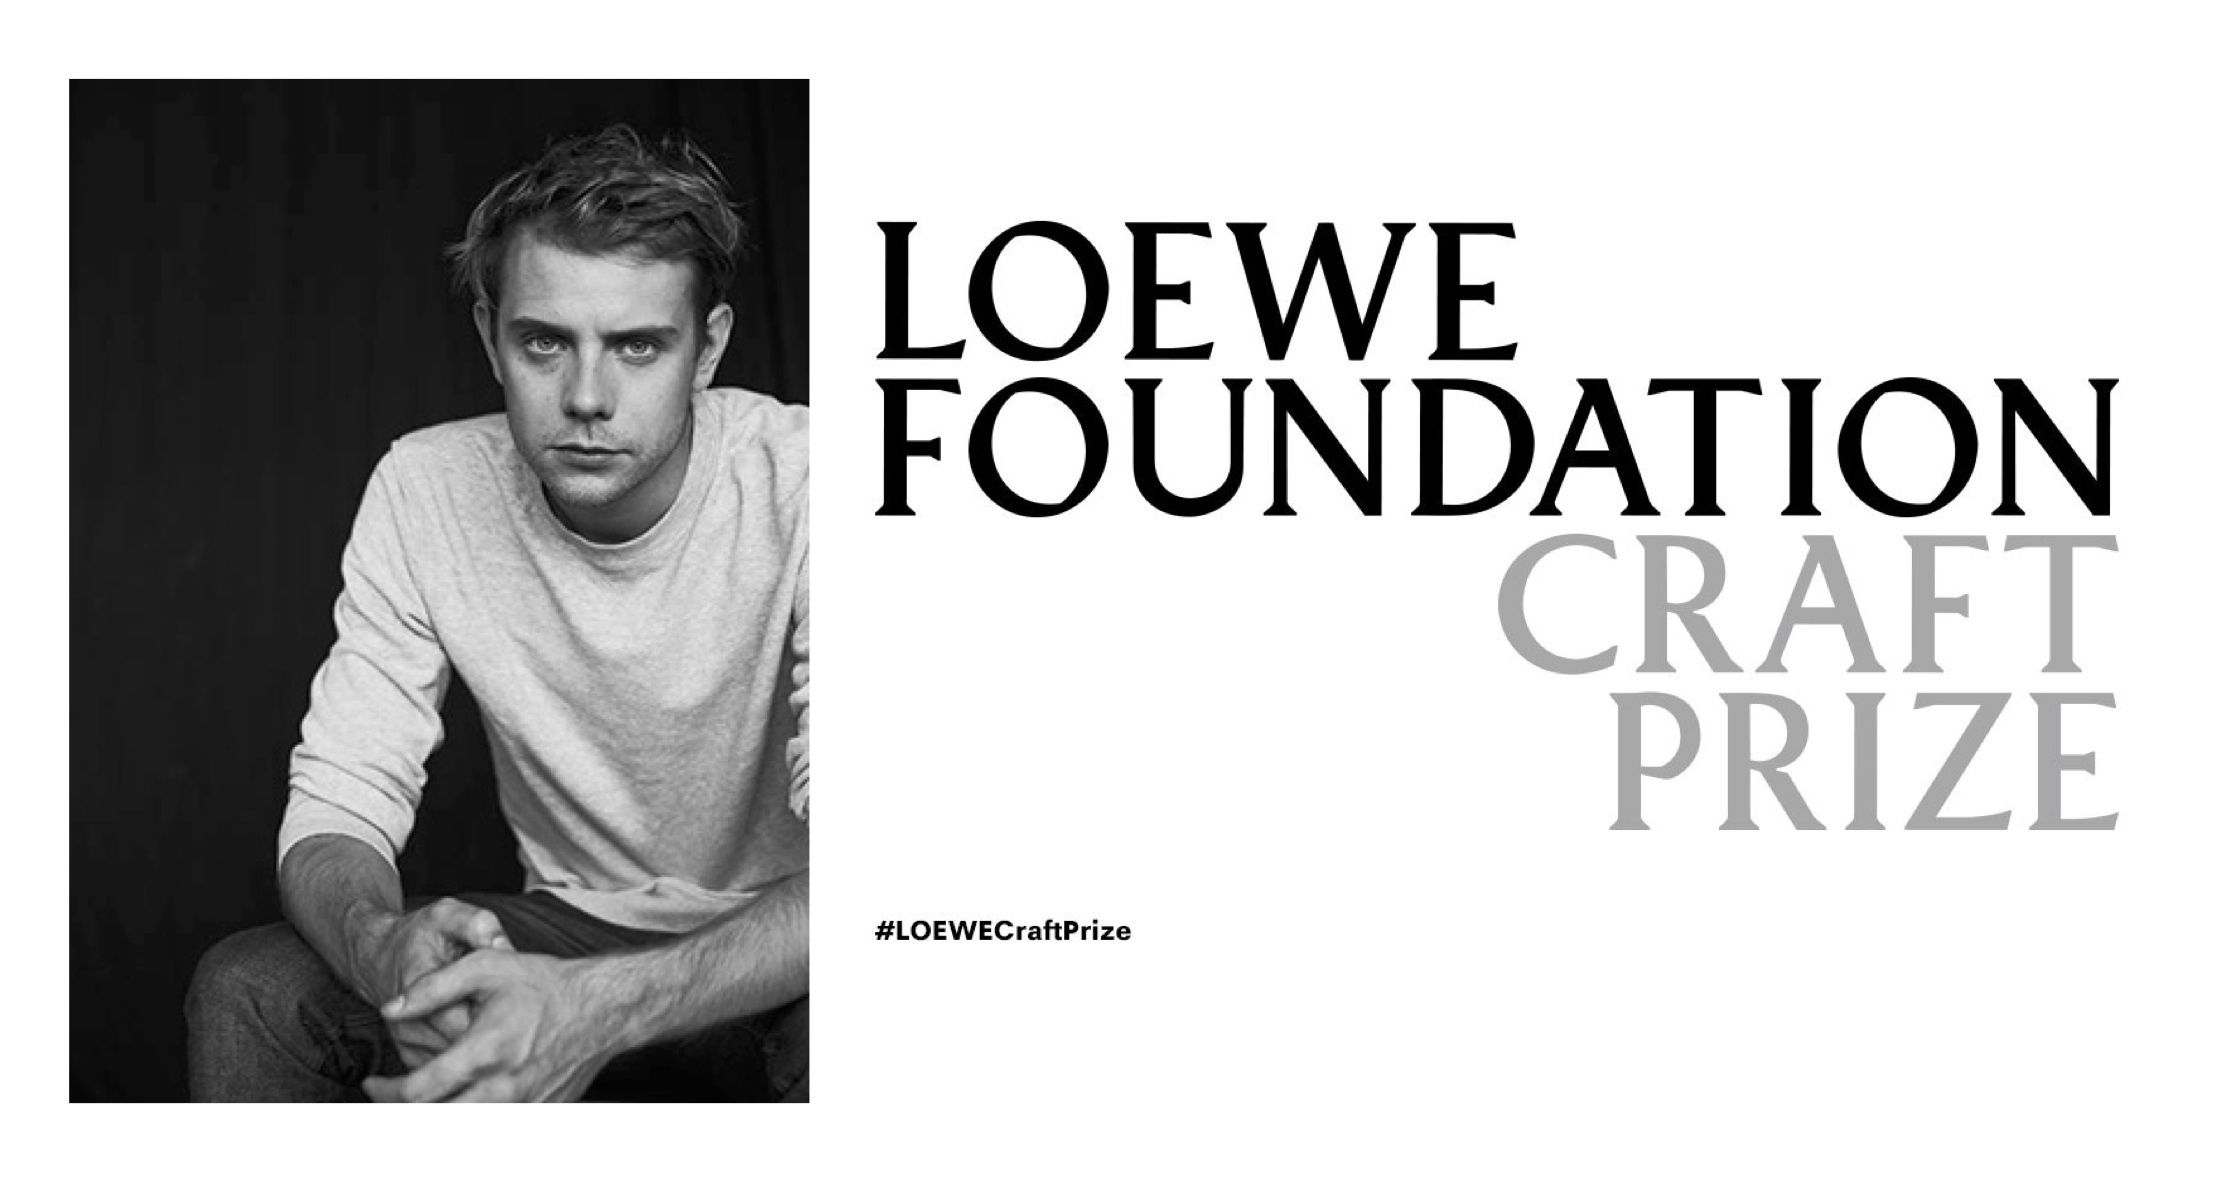 LOEWE FOUNDATION CRAFT PRIZE 2017